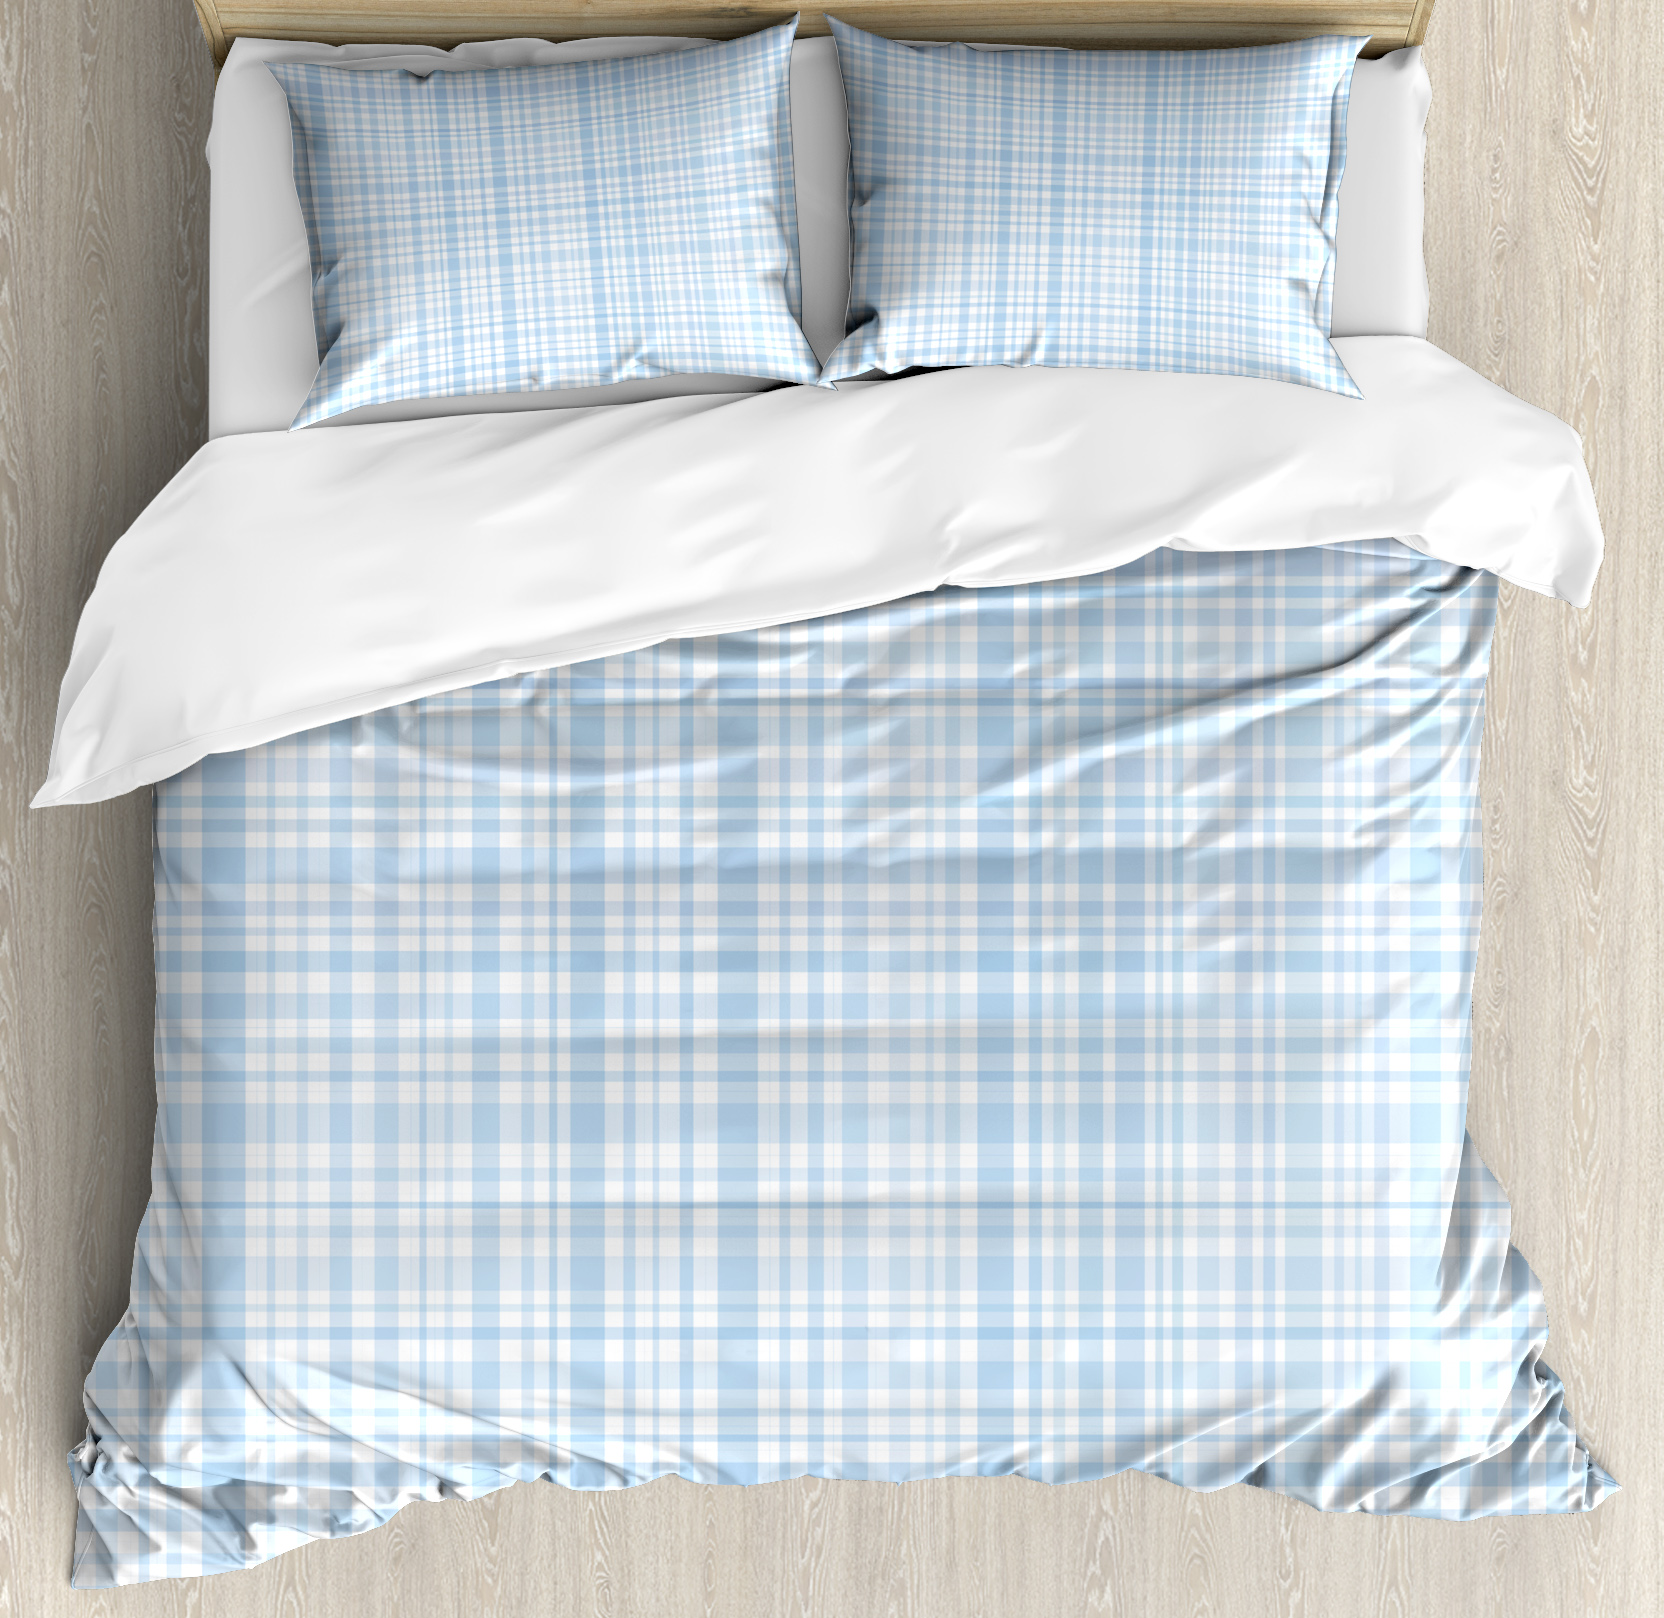 Buy Duvet Cover Seafoam Queen Size Duvet Cover Set Plaid Quilt Pattern With Squares And Lines Abstract Traditional Arrangement Decorative 3 Piece Bedding Set With 2